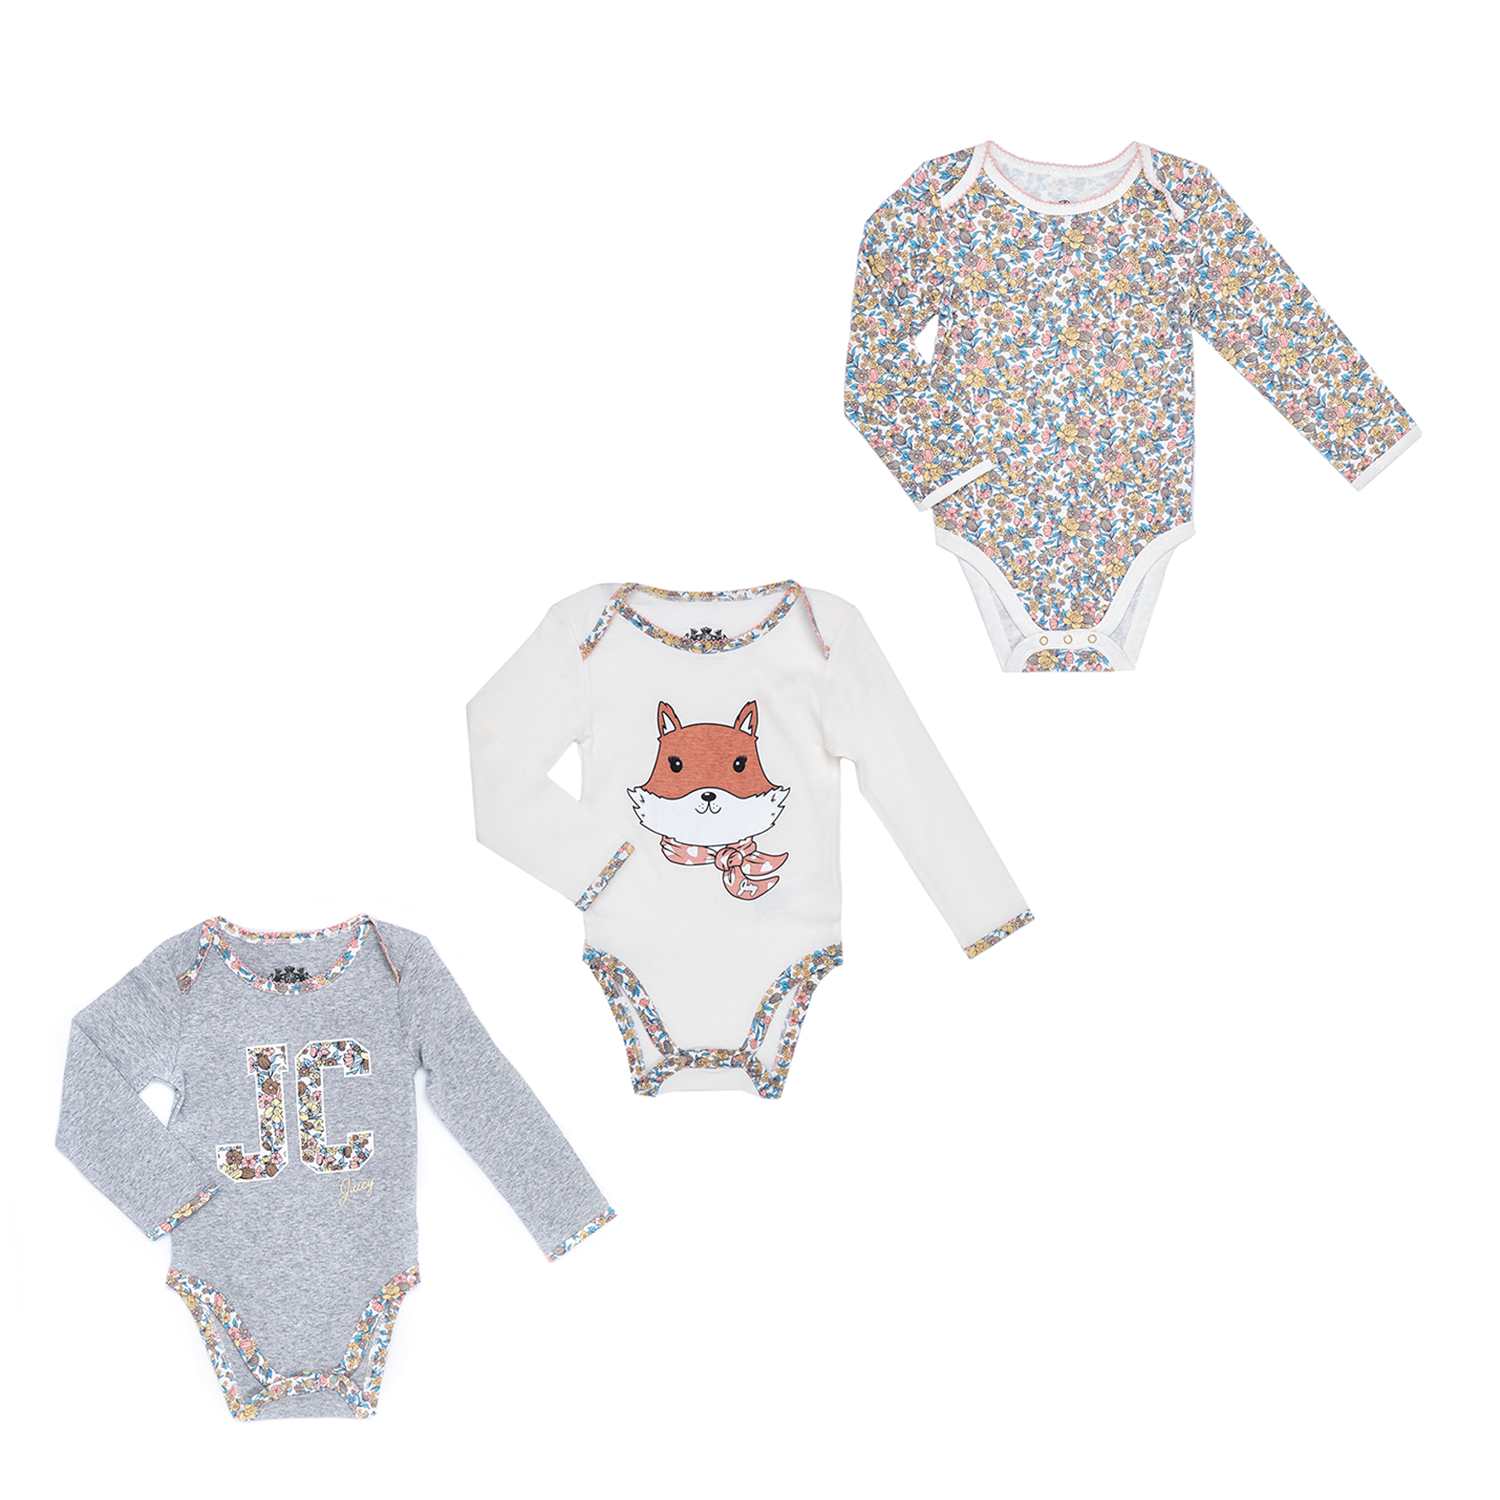 8ed2deecce19 JUICY COUTURE KIDS – Βρεφικό σετ JUICY COUTURE KIDS εμπριμέ-γκρι-άσπρο